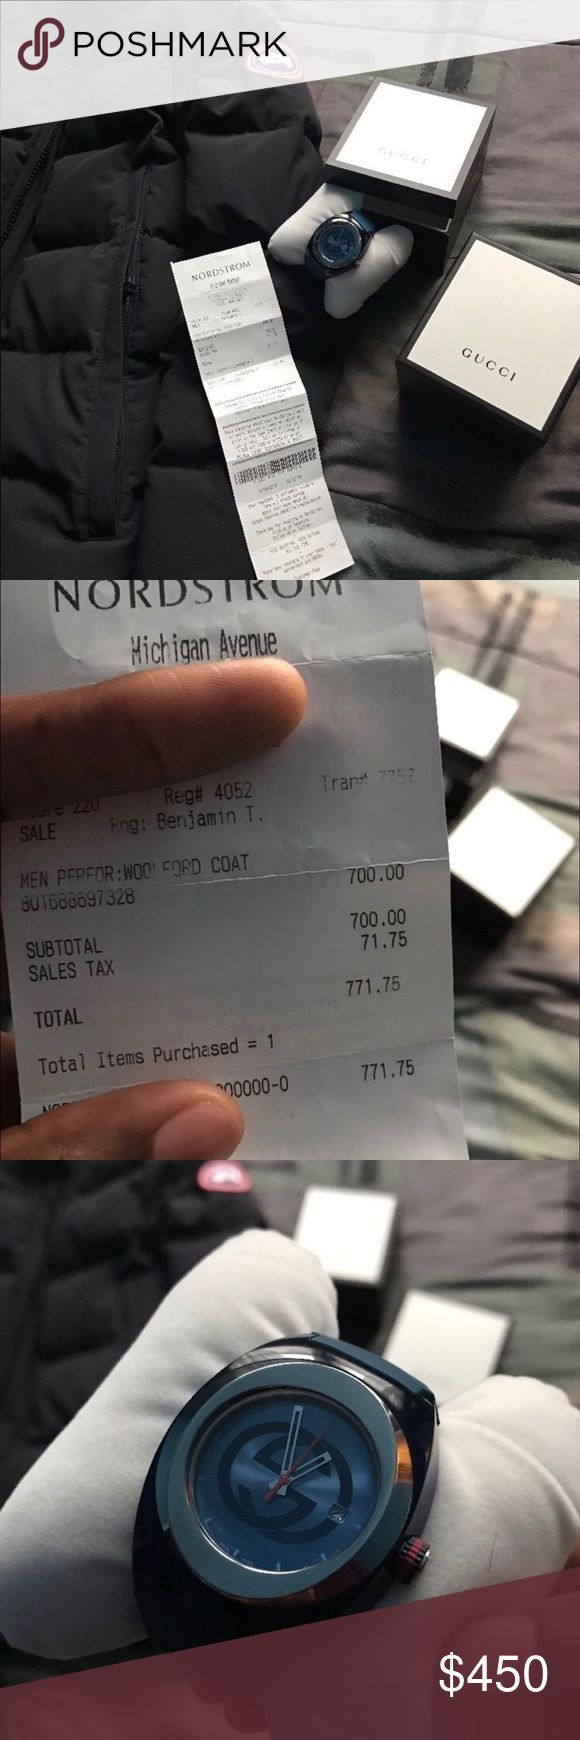 Canada Goose plus Gucci watch Authentic Canada goose parka jacket shown with receipt from Nordstrom and Authentic Gucci Watch from Rogers & Hollands jacket was 771.00 and Watch was 500.00 all I'm asking for is 350.00 , in need of cash fast is the only reason I'm doing this, DO NOT PURCHASE BEFORE CONTACTING ME!! Payments are expected through Paypal and my business account , I only take Paypal payments , and ship items to you Canada Goose Jackets & Coats Puffers